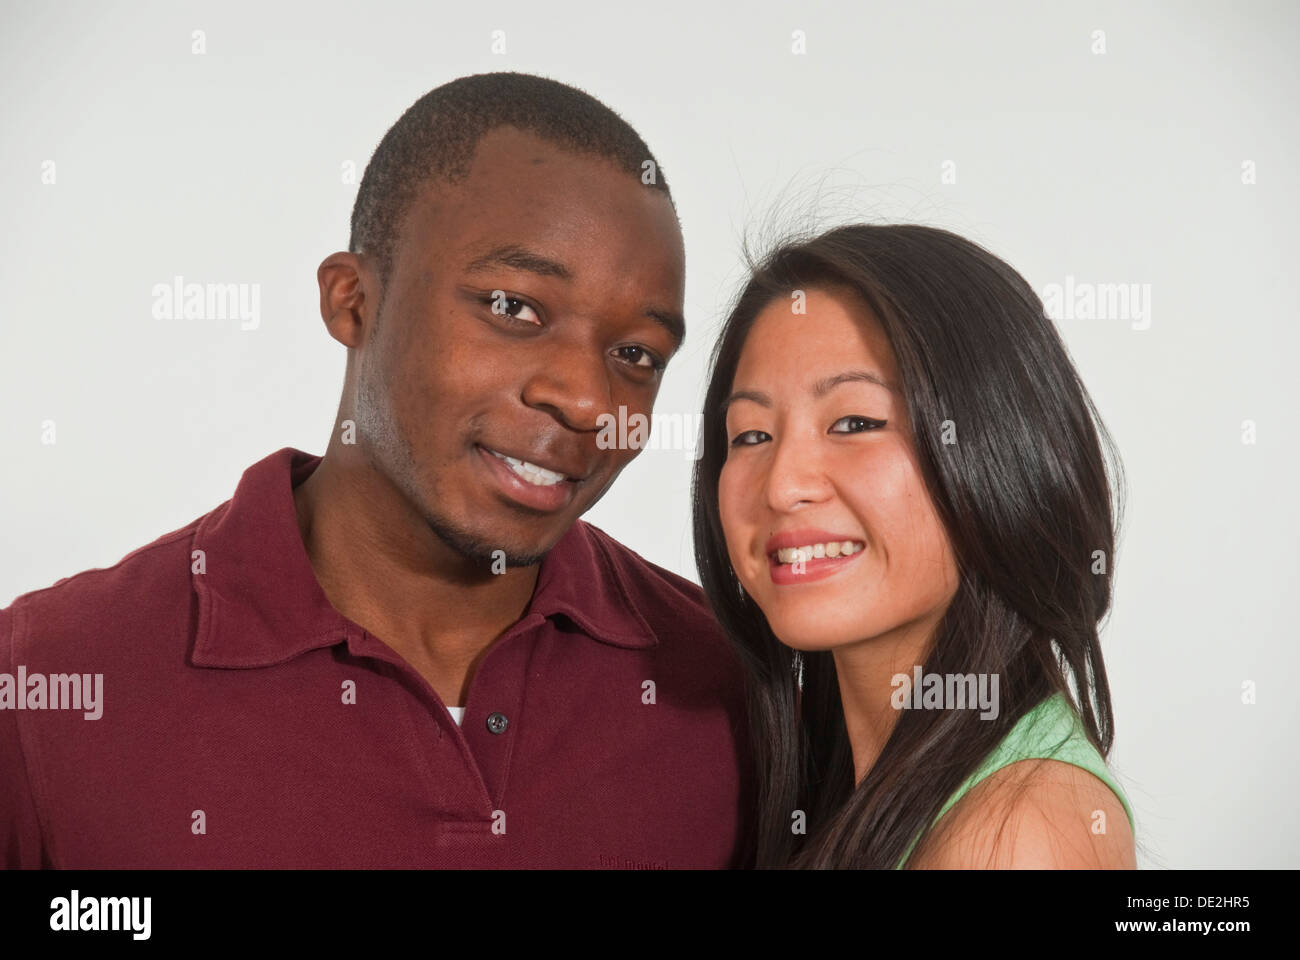 Portrait of young dark-skinned man and young Asian woman - Stock Image